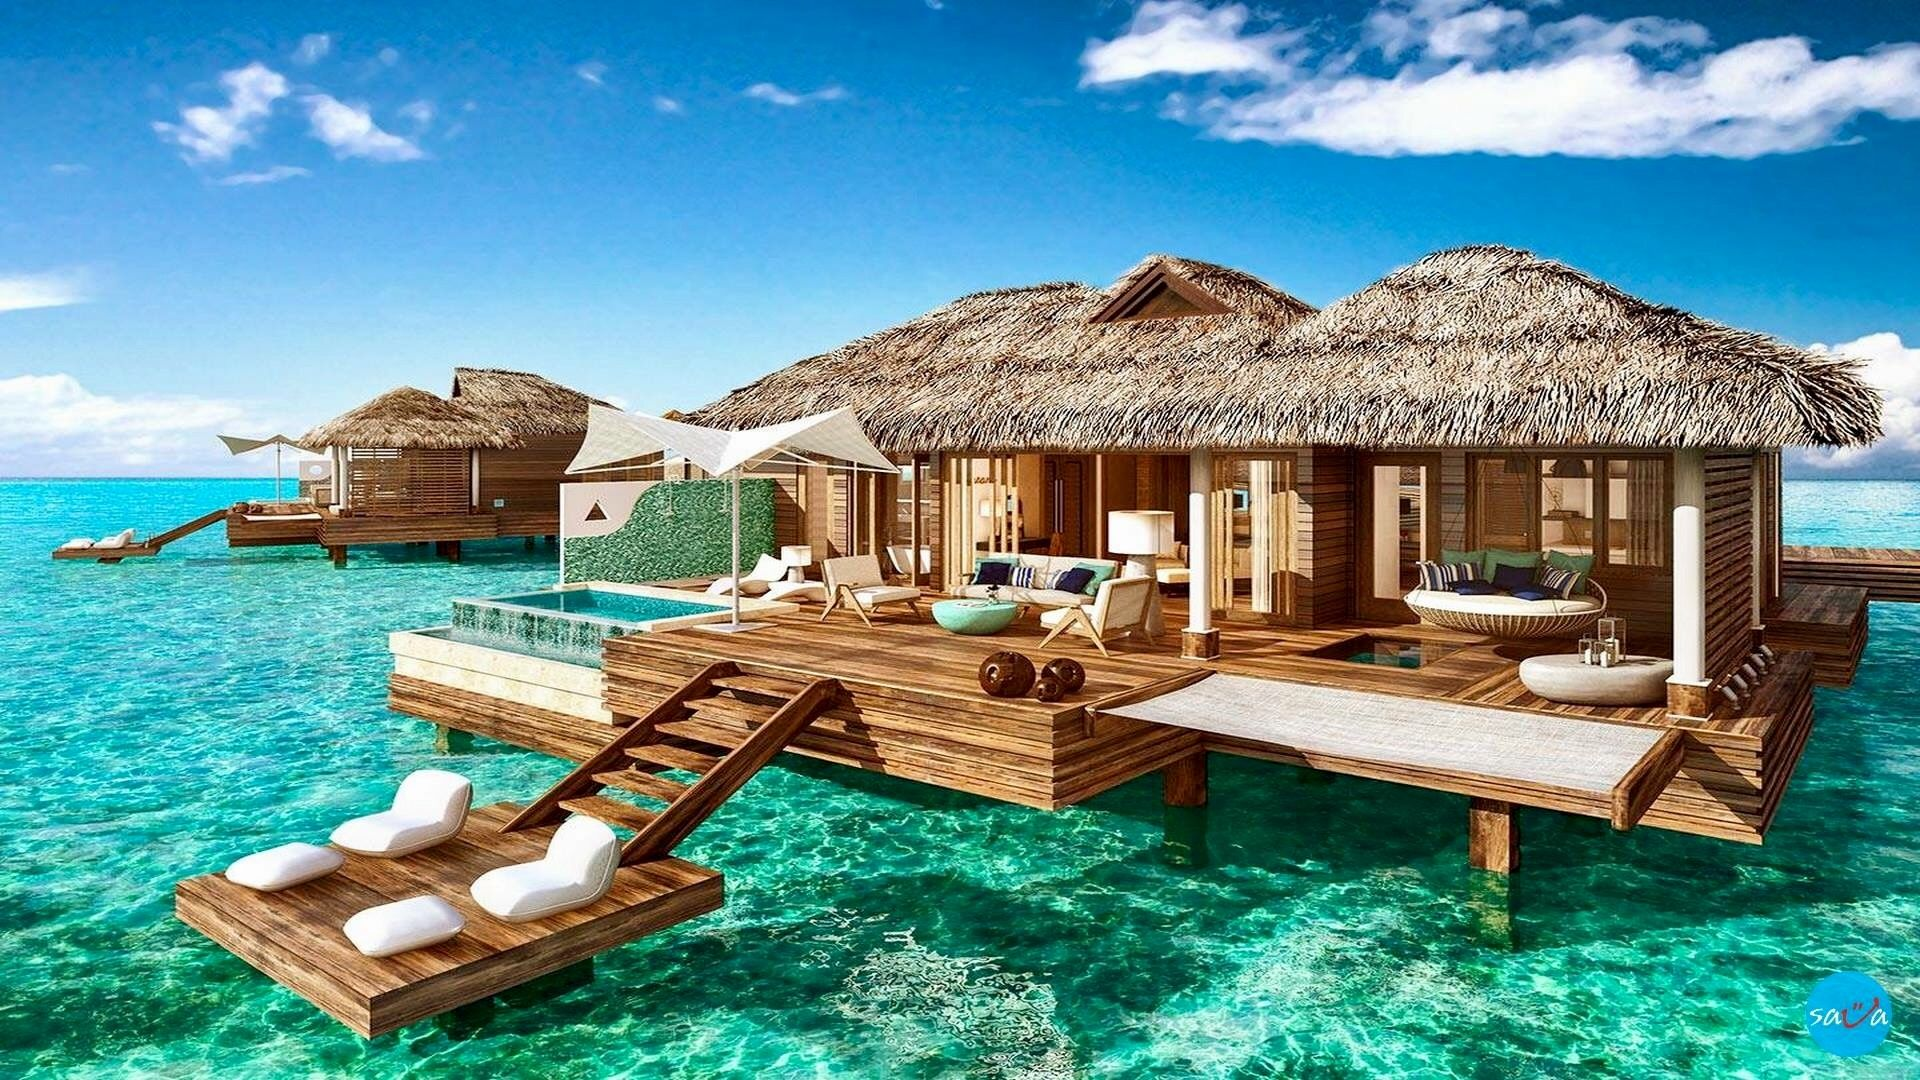 Pin by Boris Vasovski on Travel  Water bungalow